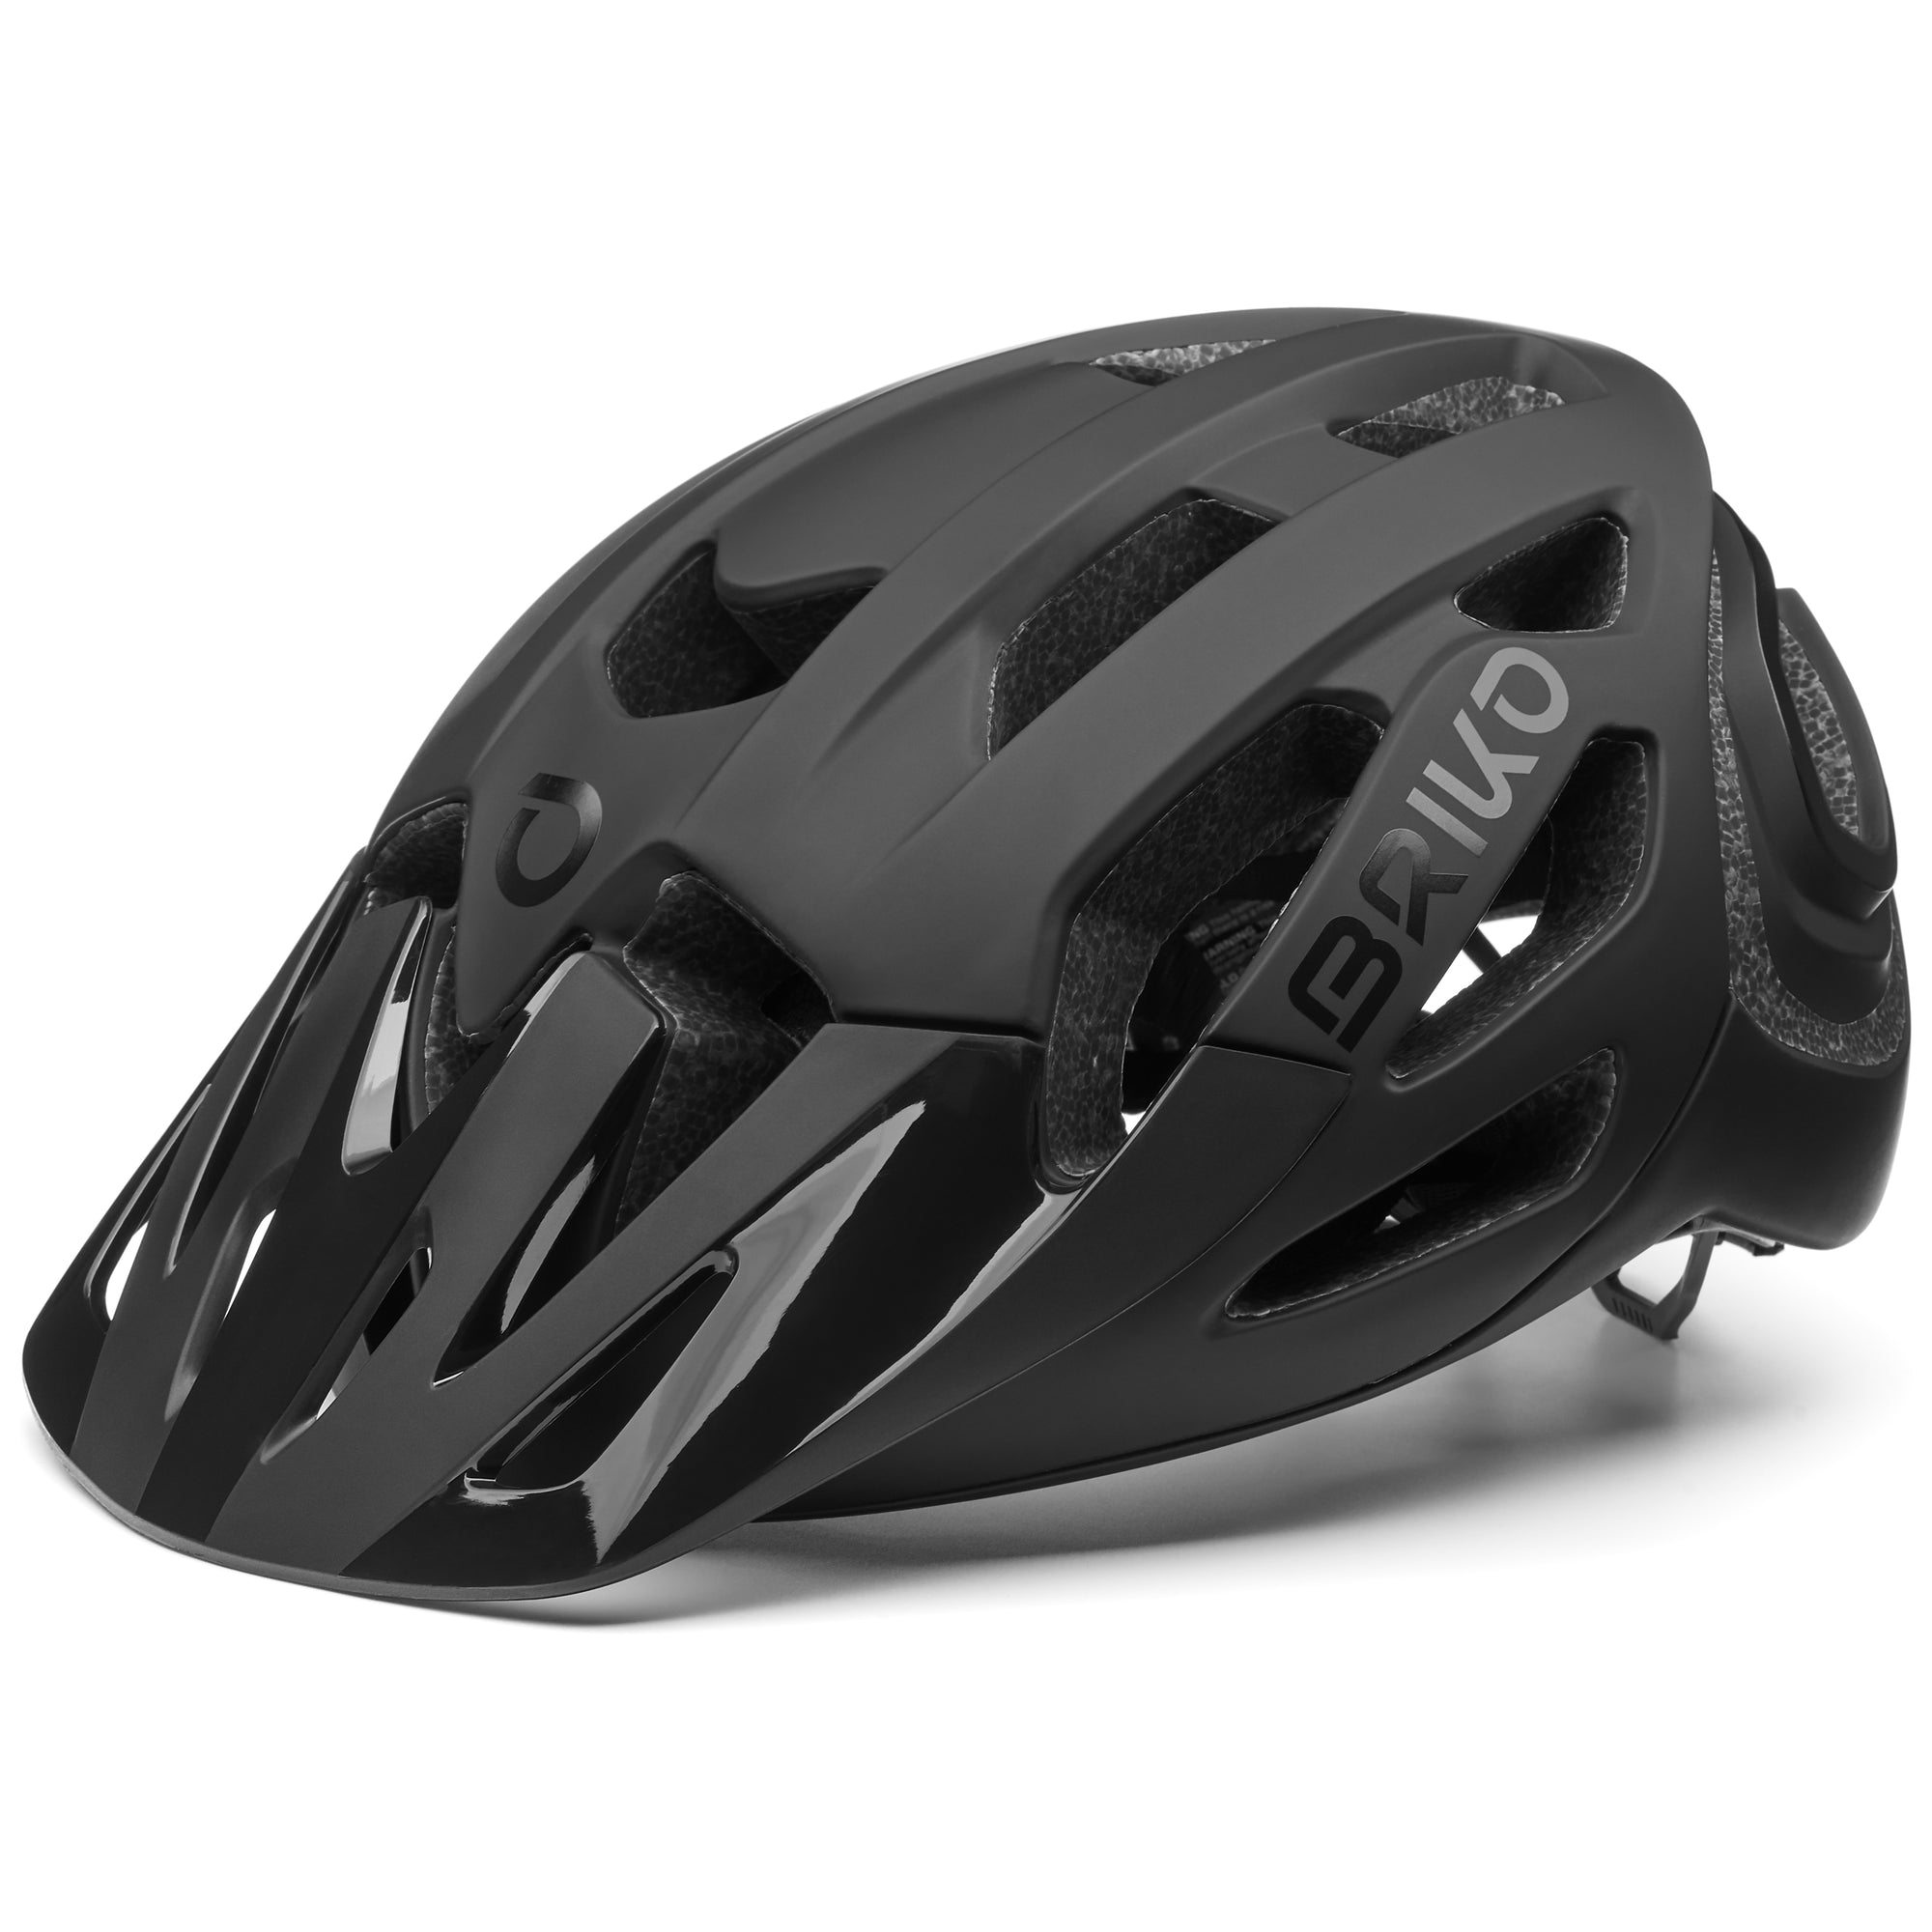 S19 Sismic Bike Helmet